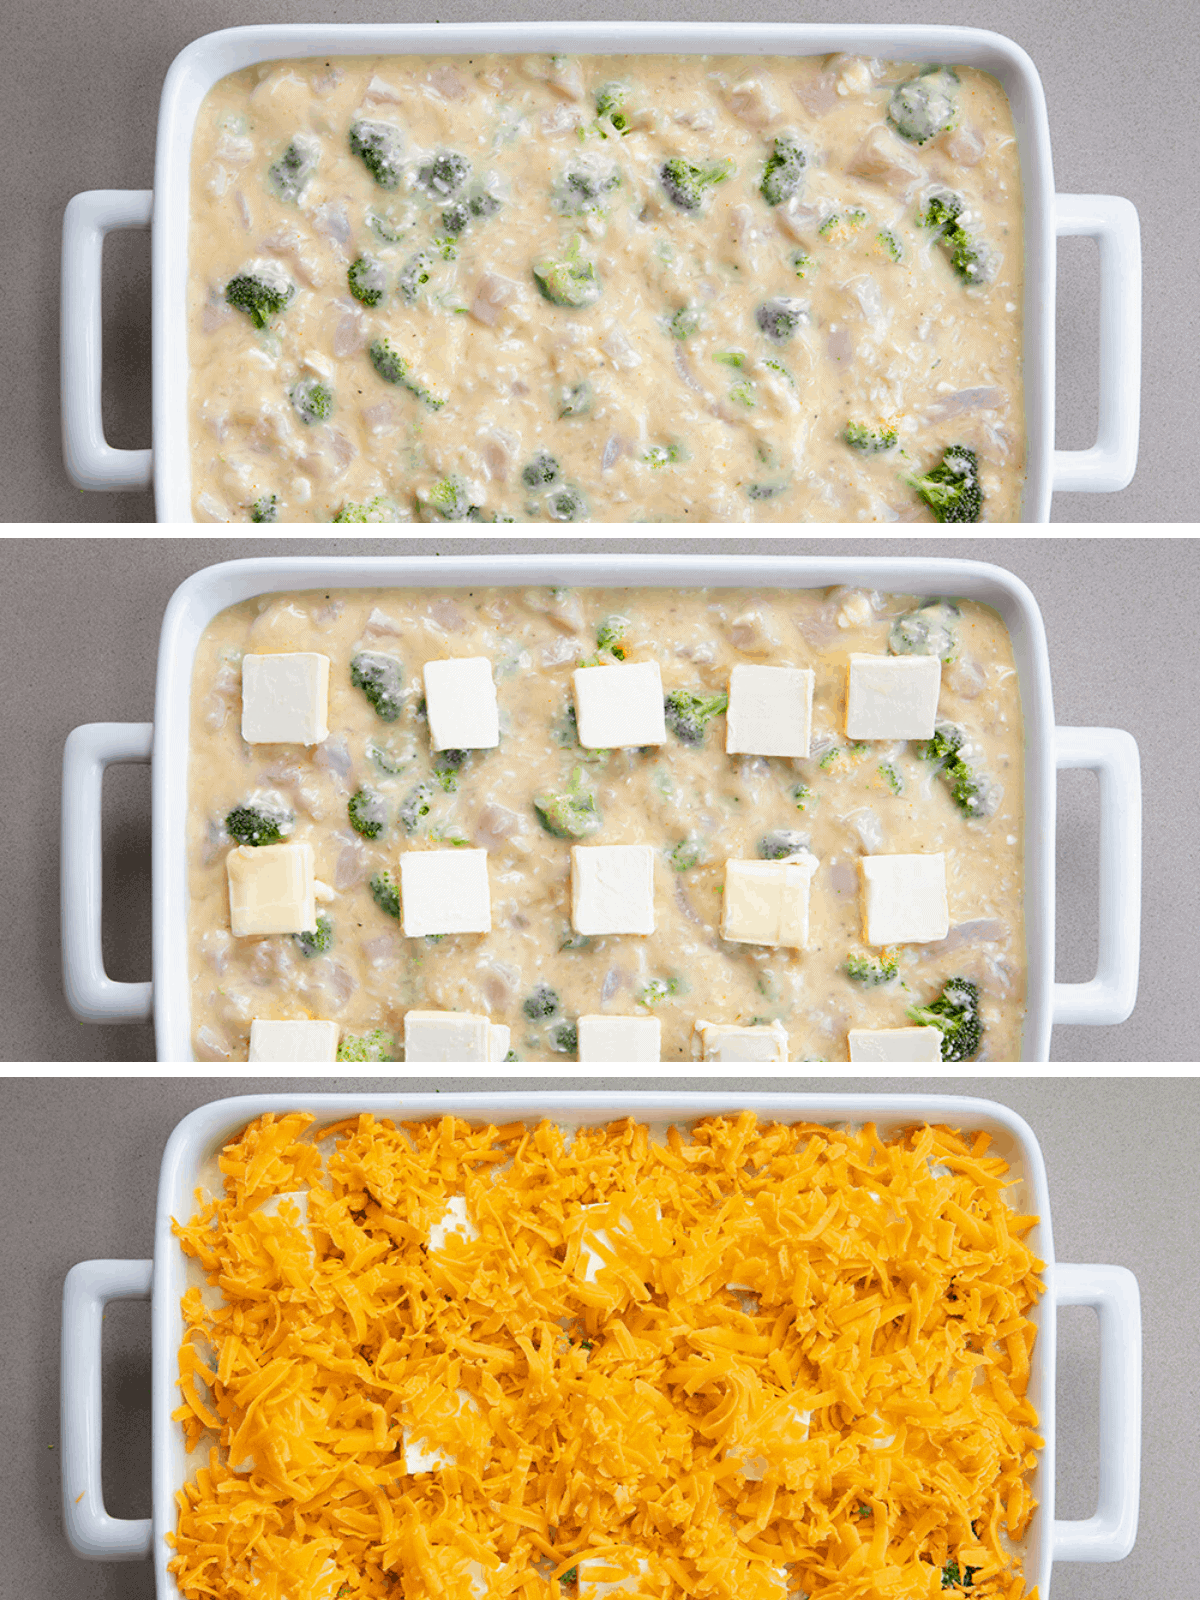 Three Process Images of Chicken Mixture, Chicken Mixture and Butter, and Chicken mixture with Cheese before Baking